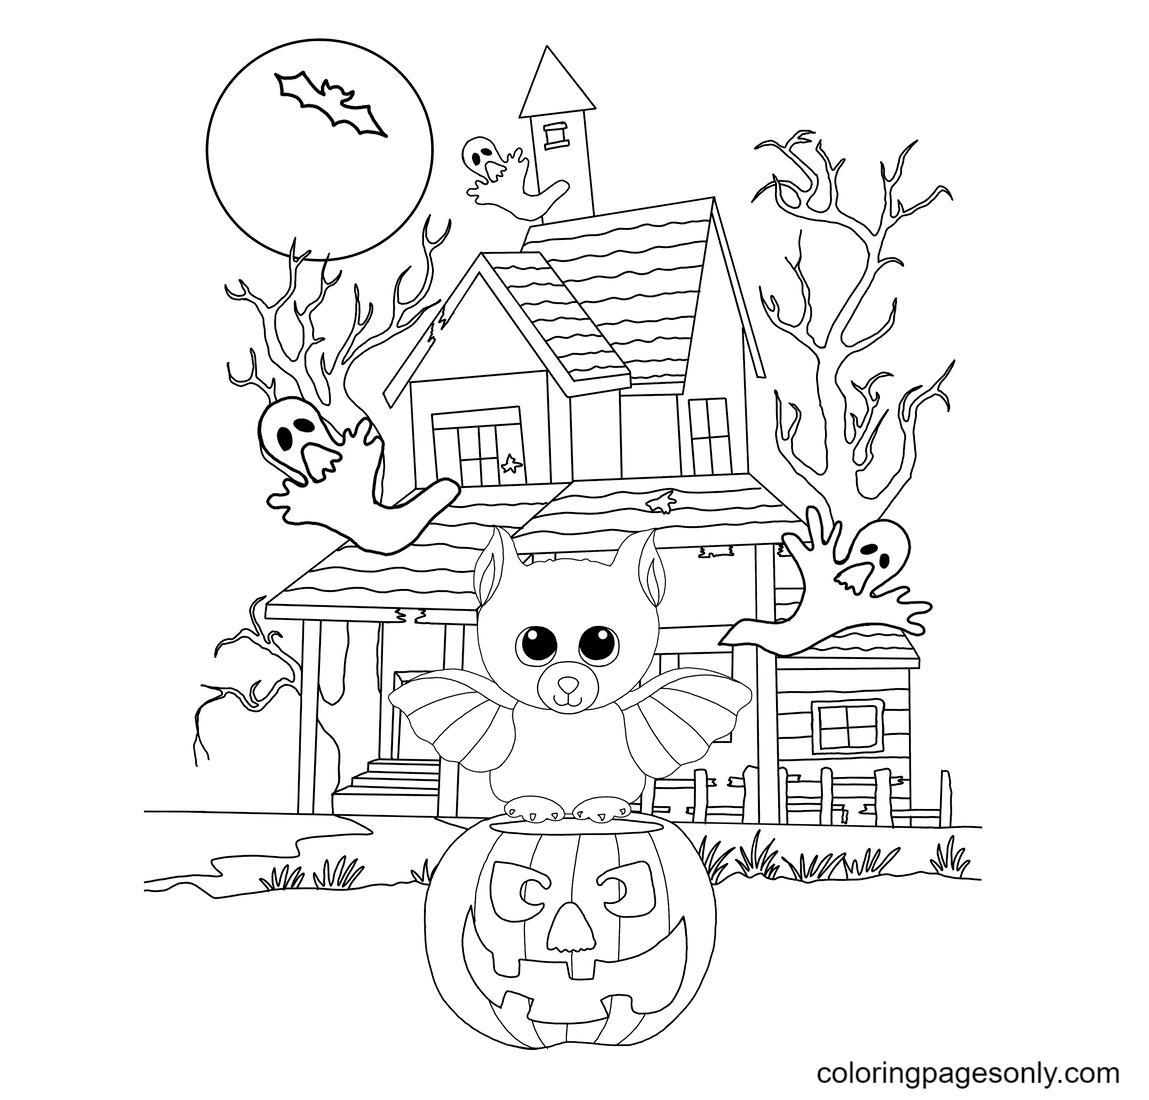 The Bat and the Haunted House Coloring Page